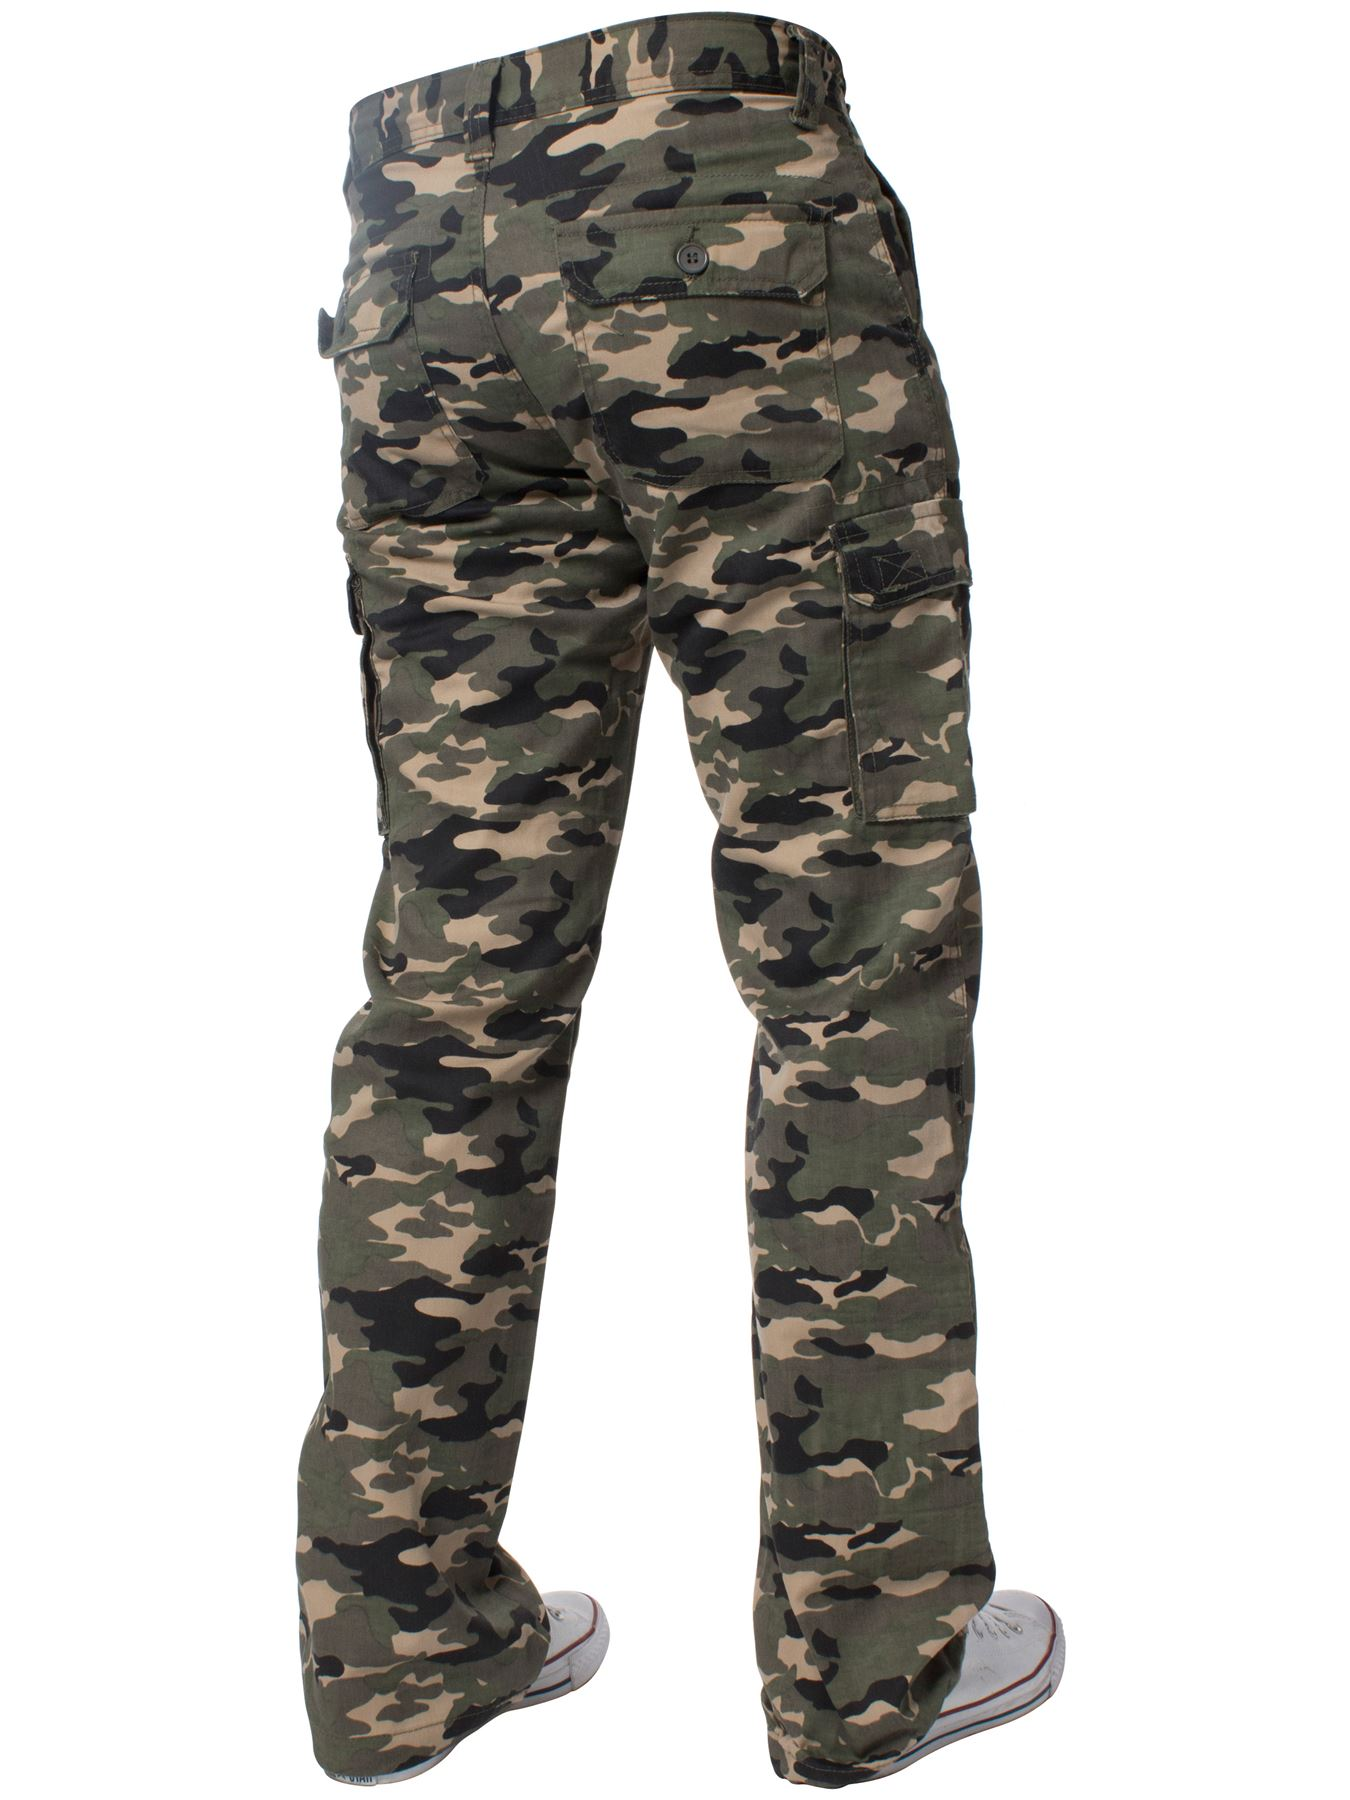 Kruze-Mens-Military-Combat-Trousers-Camouflage-Cargo-Camo-Army-Casual-Work-Pants thumbnail 16